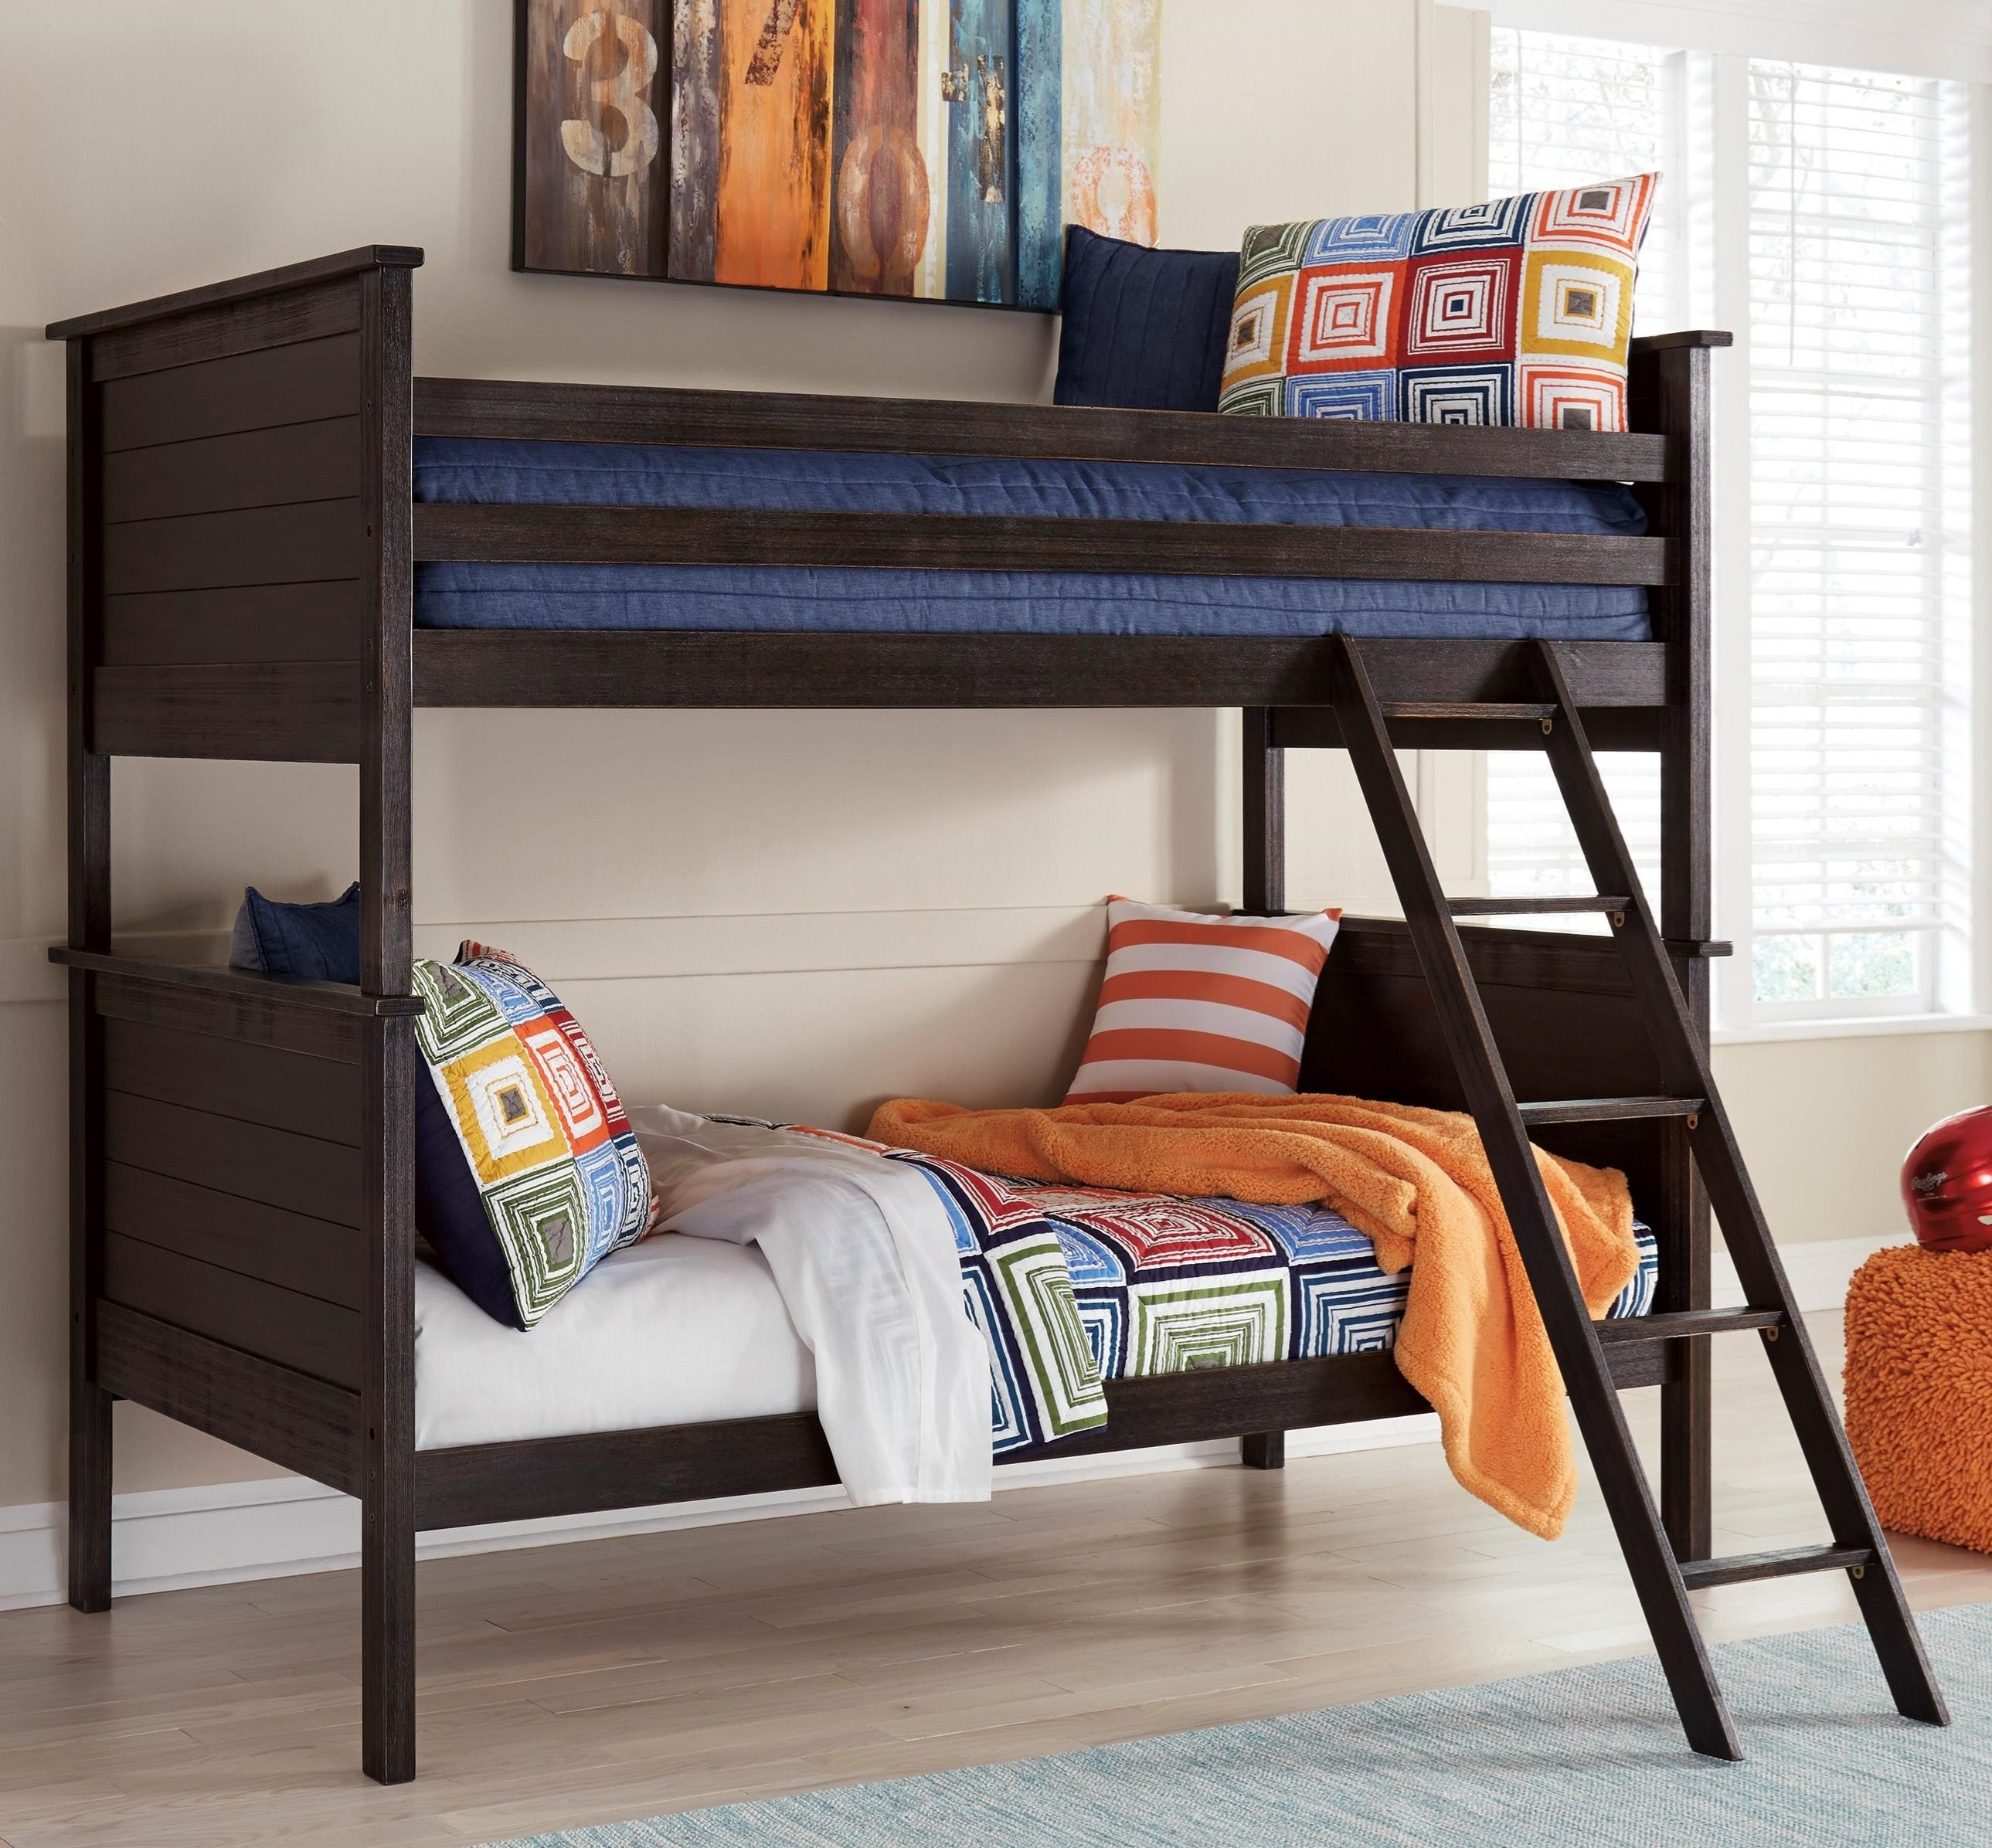 Signature Design By Ashley Jaysom Twin Twin Bunk Bed In Rub Through